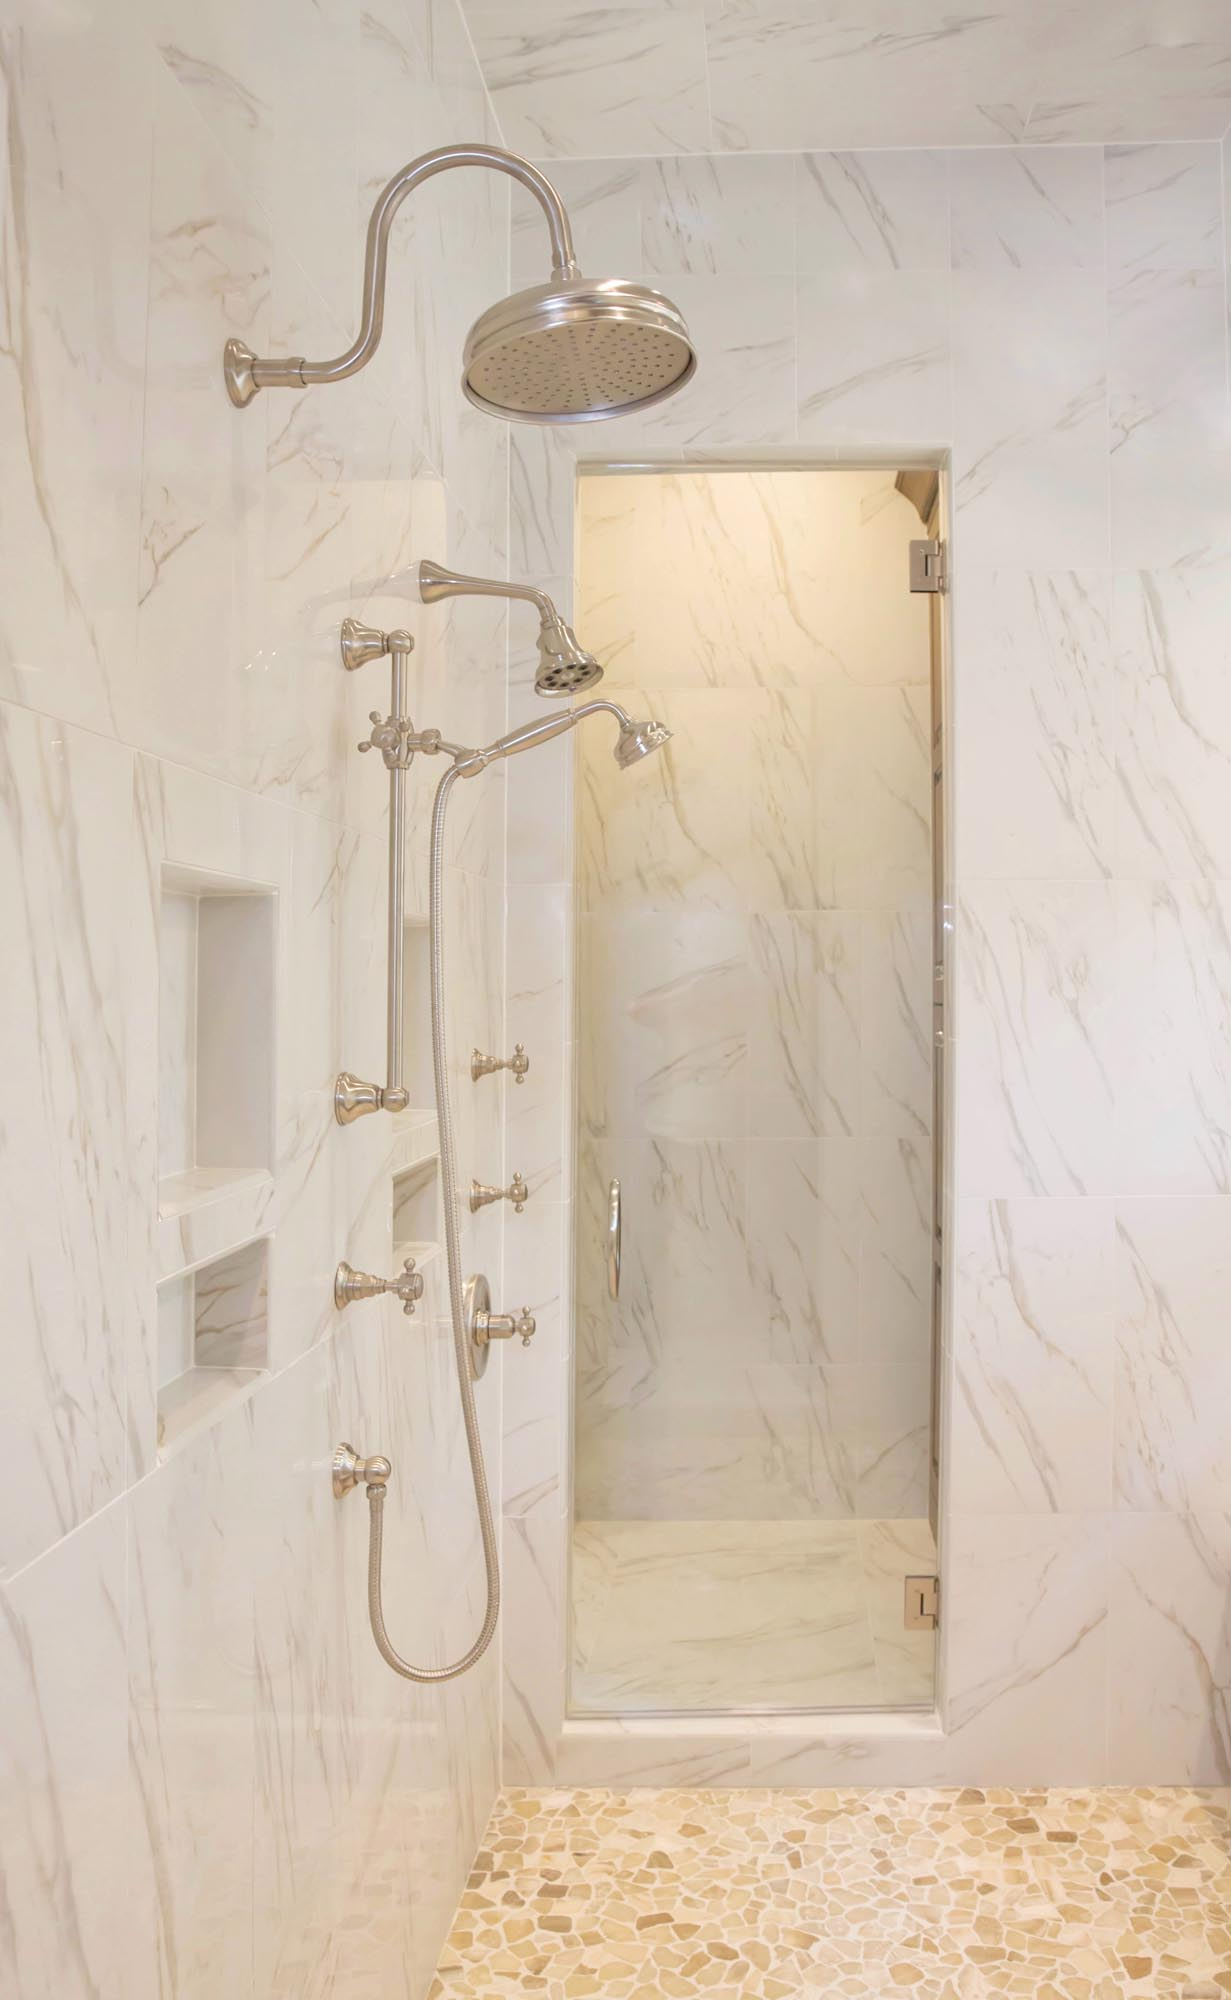 Spa shower in luxury bath with marble patterned tile